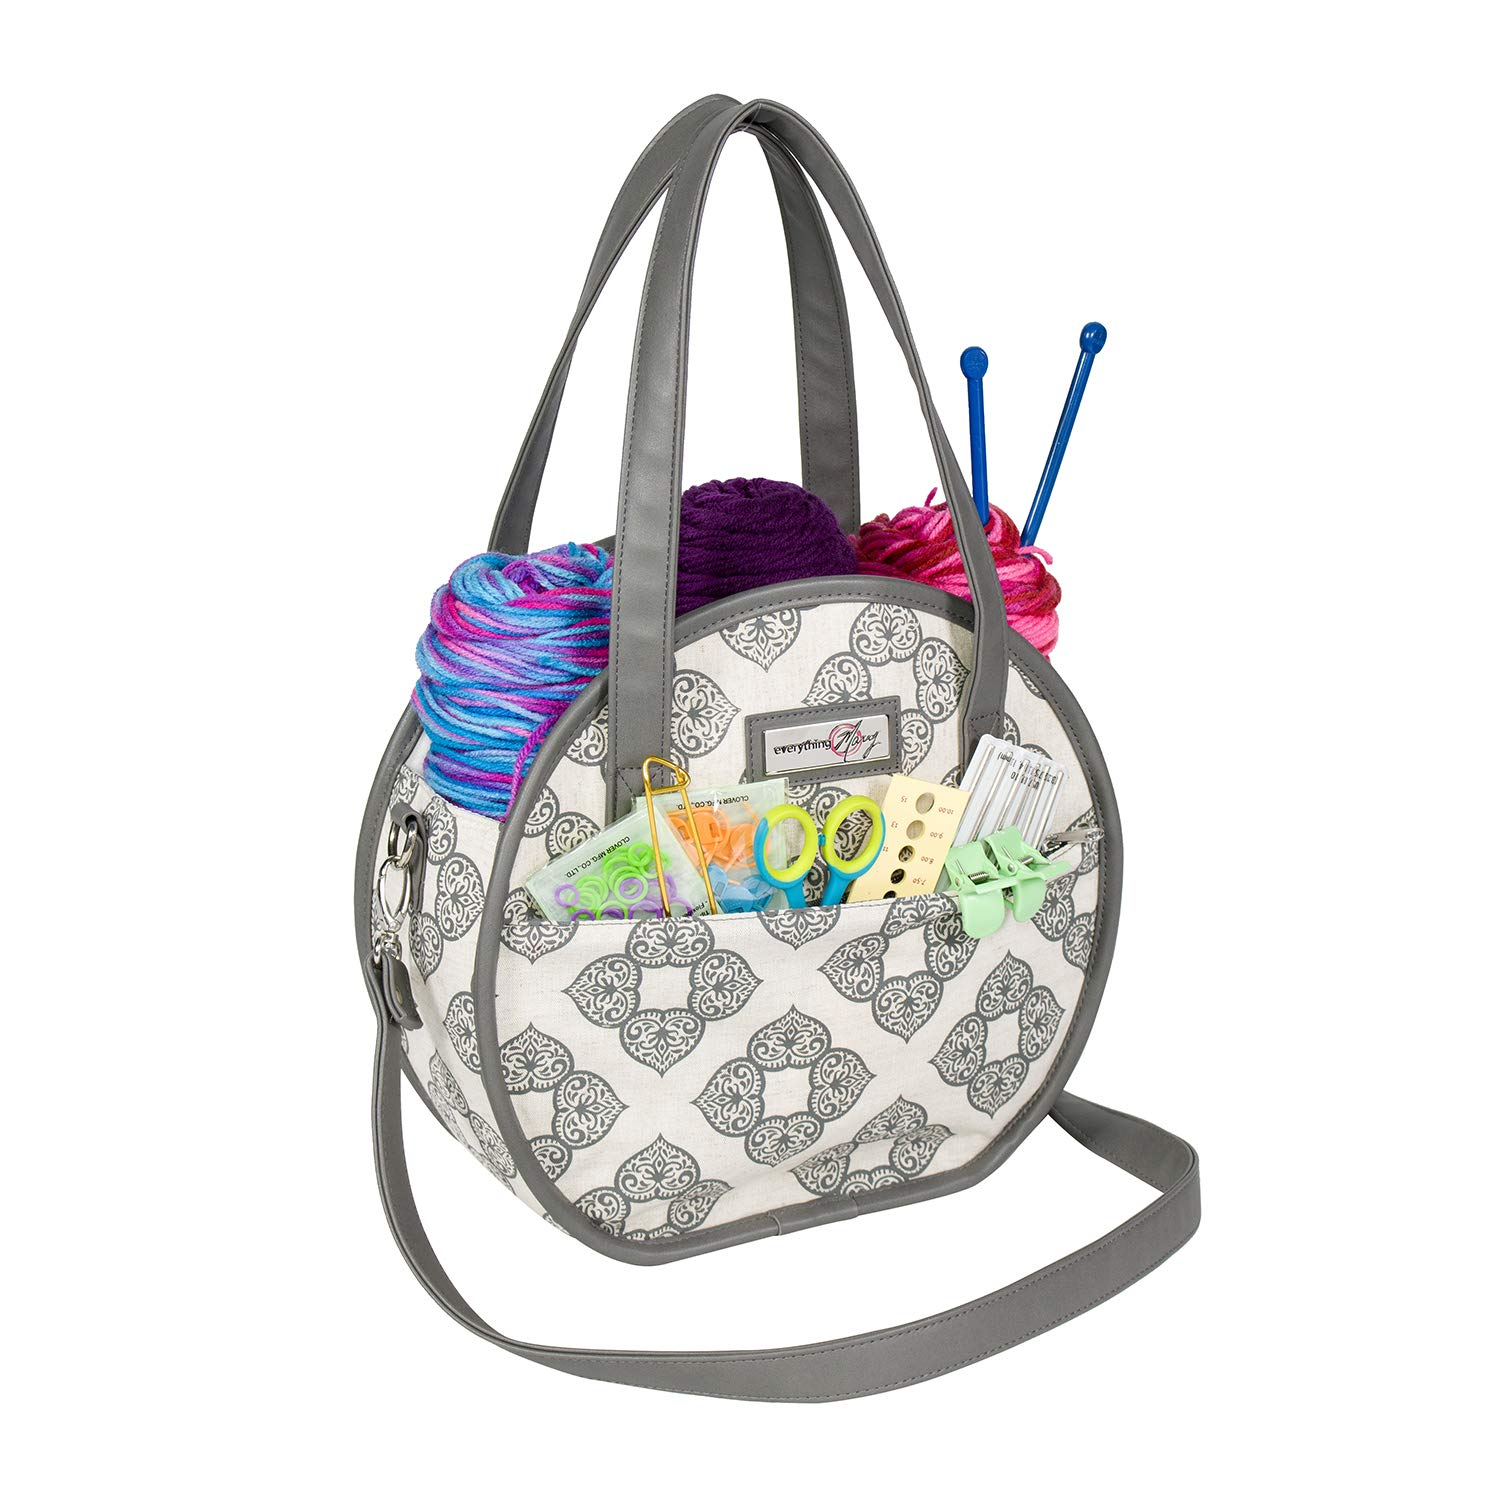 Everything Mary Rounded Crochet Knitting Bag Organizer, Linen - Yarn Storage Caddy for Arts & Crafts - For Needles, Thread, & Supplies - Craft Case for Crocheting Accessories - Supply Tote for Art